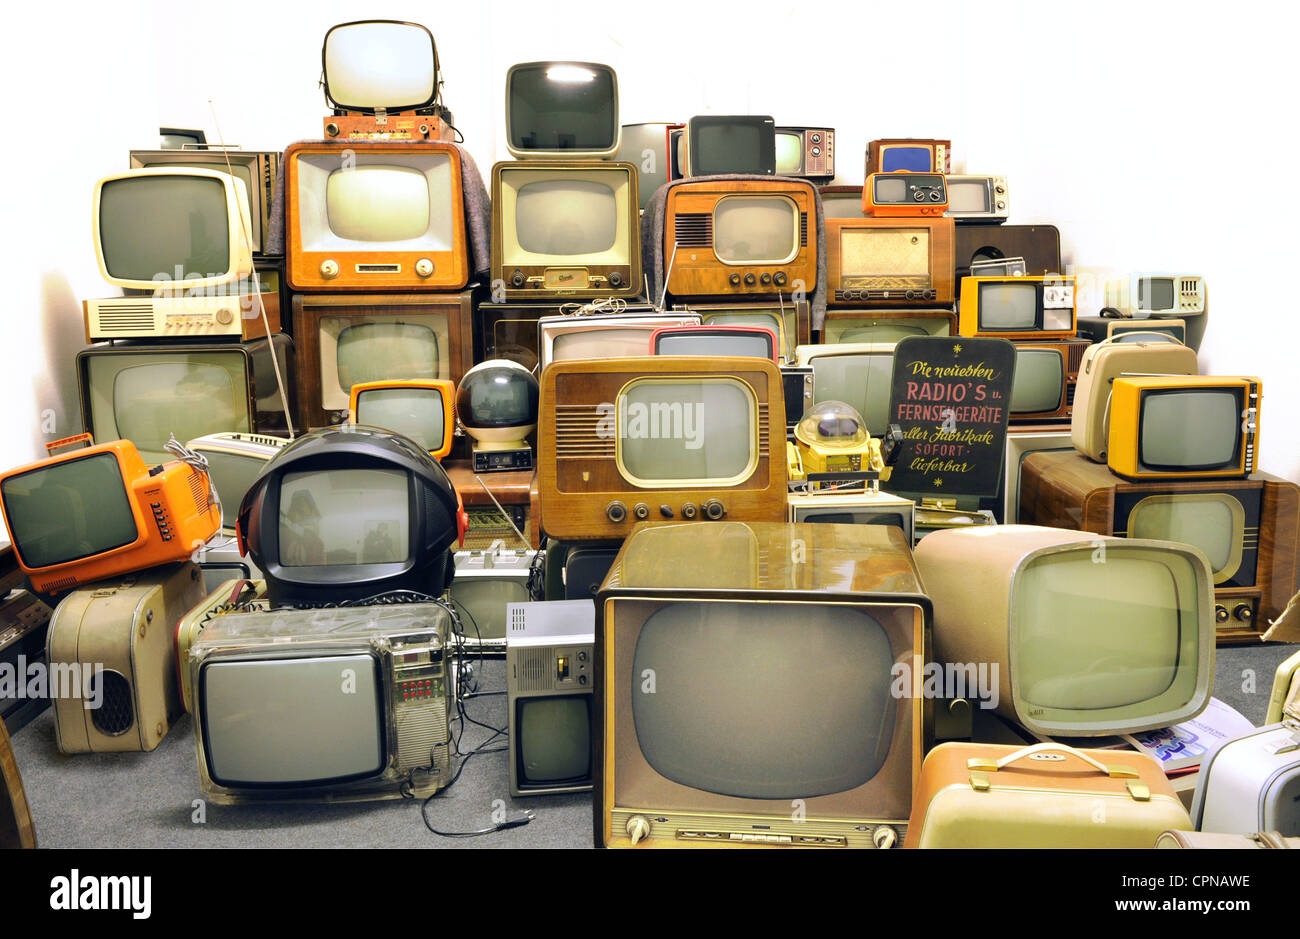 Collection of old television sets of the 50s stock photos broadcast television collection of old television sets of the 50s 60s and 70s buycottarizona